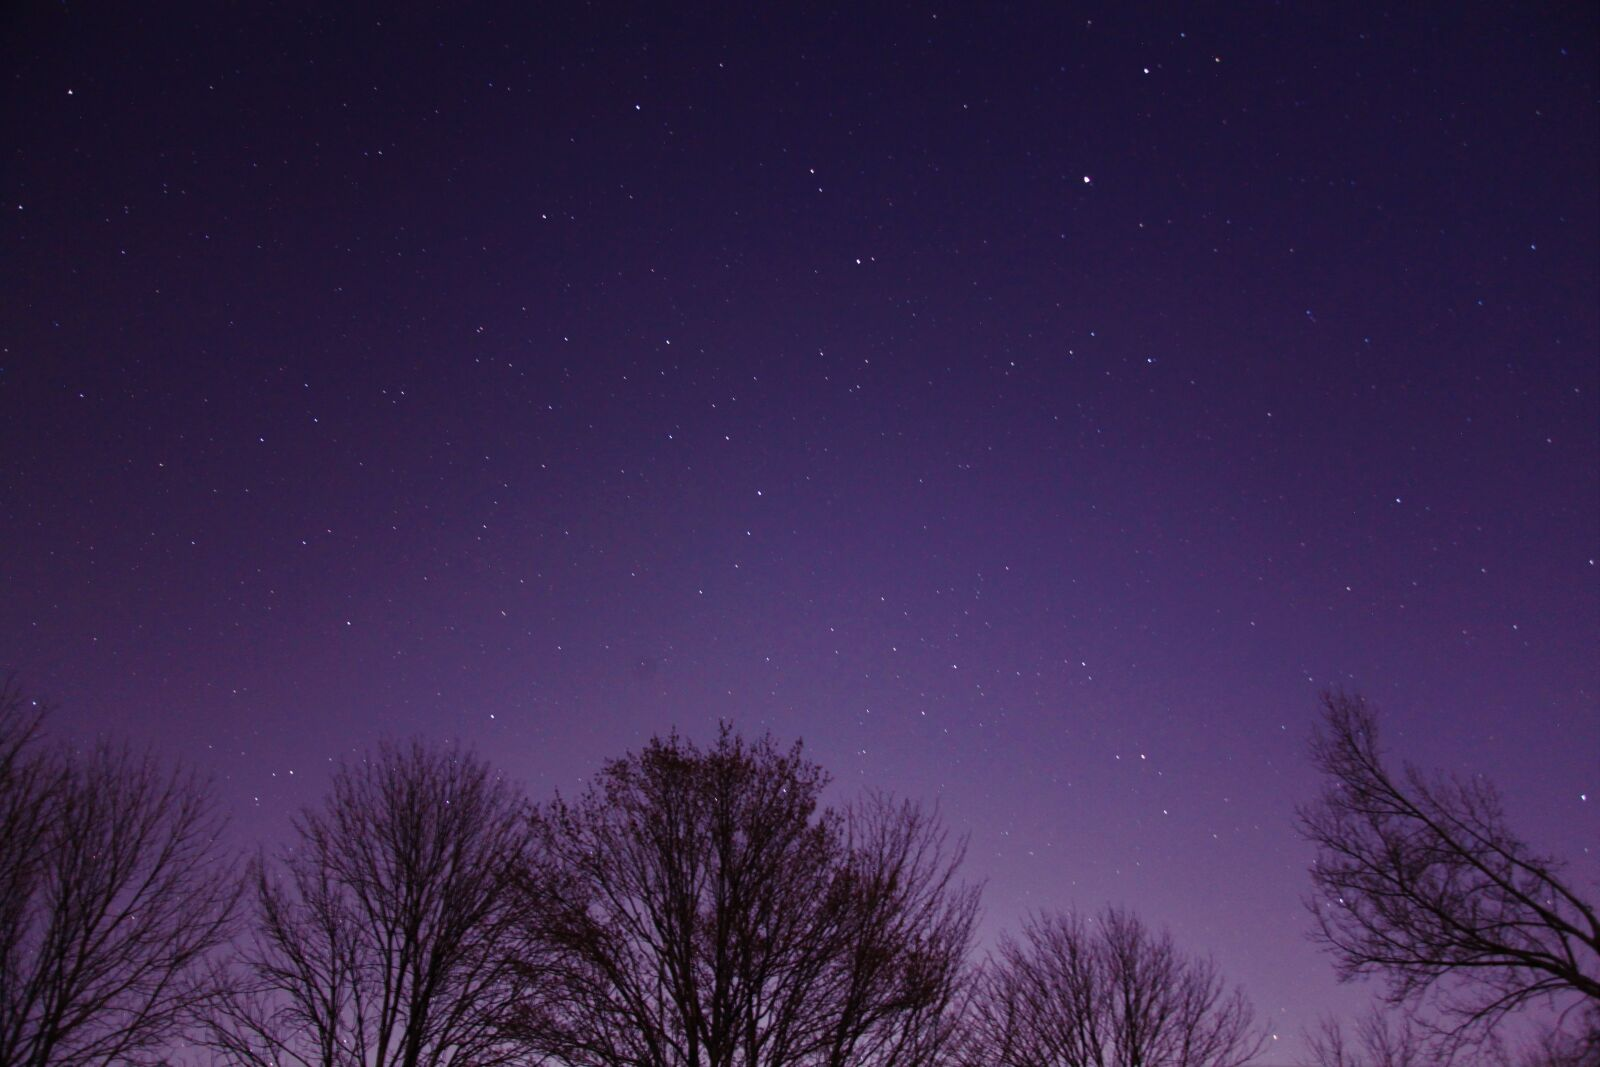 astronomy, astrophotography, late, night, Canon EOS 5D MARK II, Canon EF 28-135mm f/3.5-5.6 IS